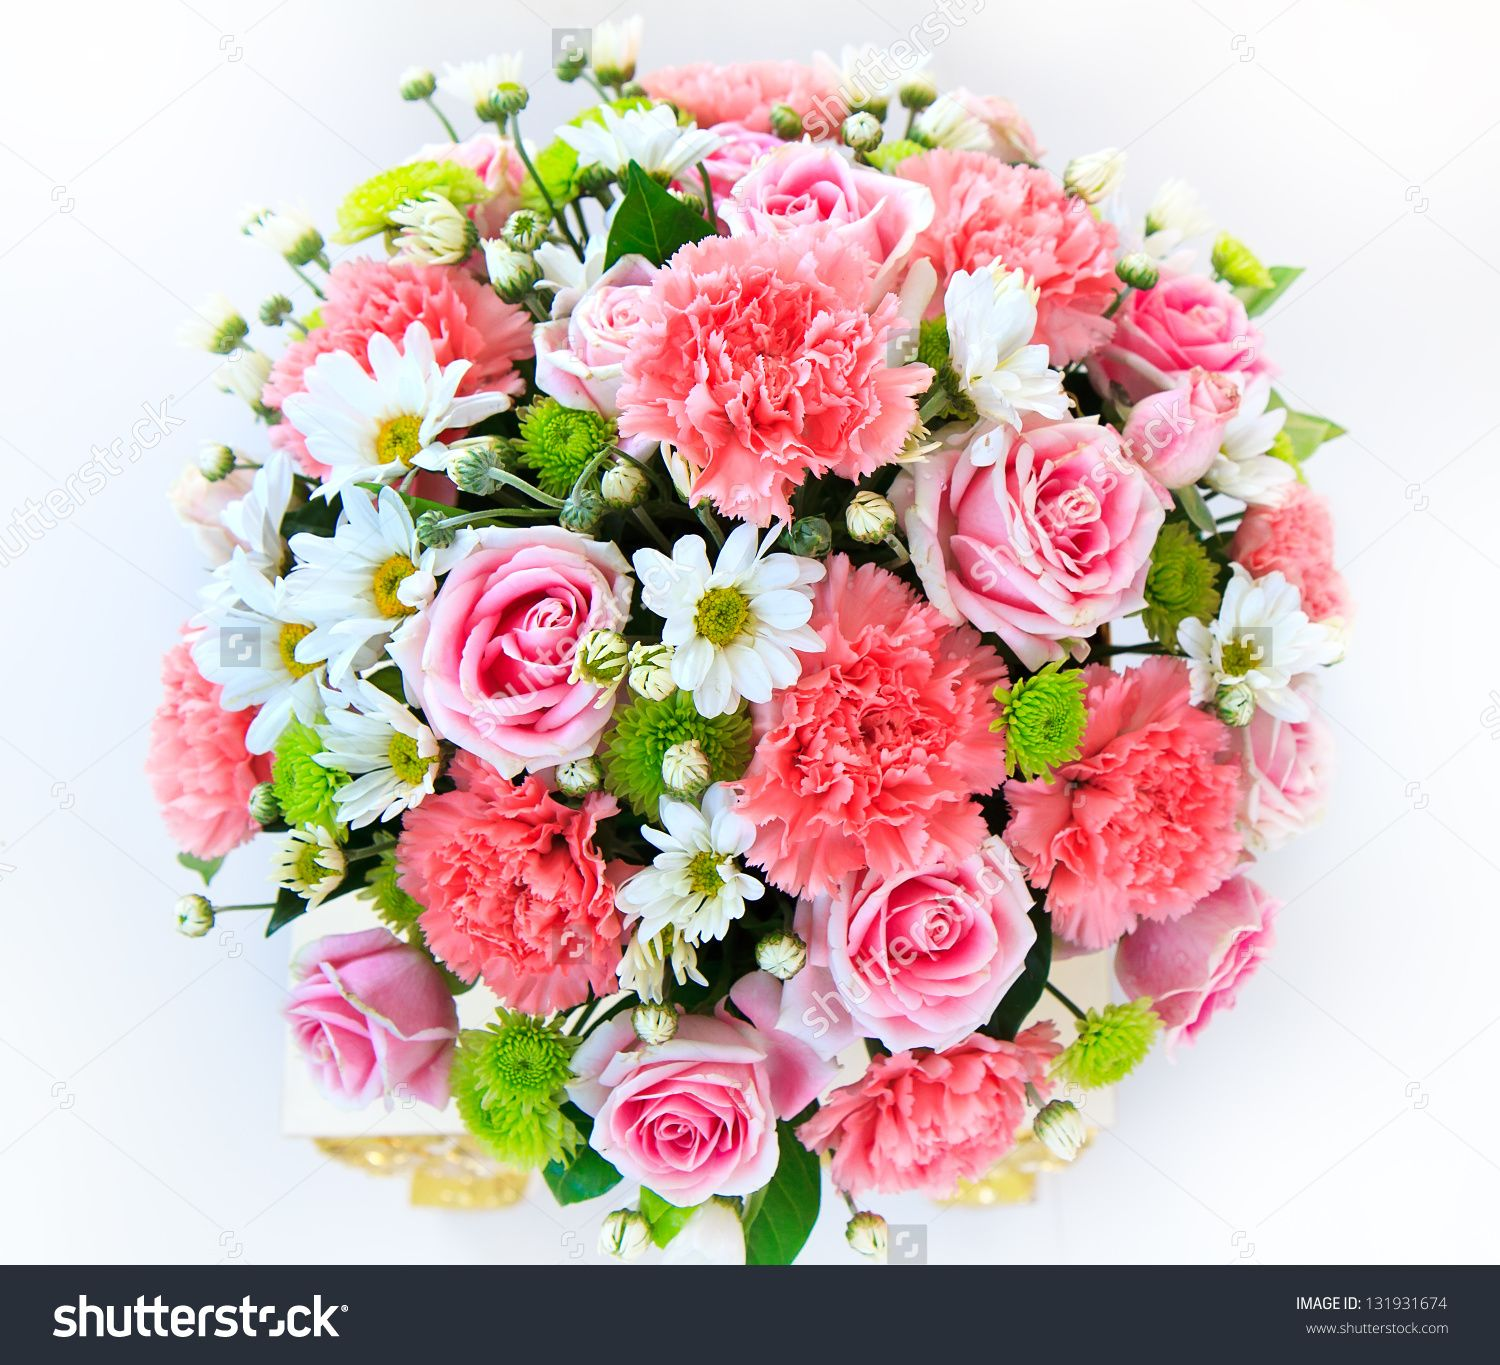 Big flower bouquets stock flower images pinterest big flowers big flower bouquets izmirmasajfo